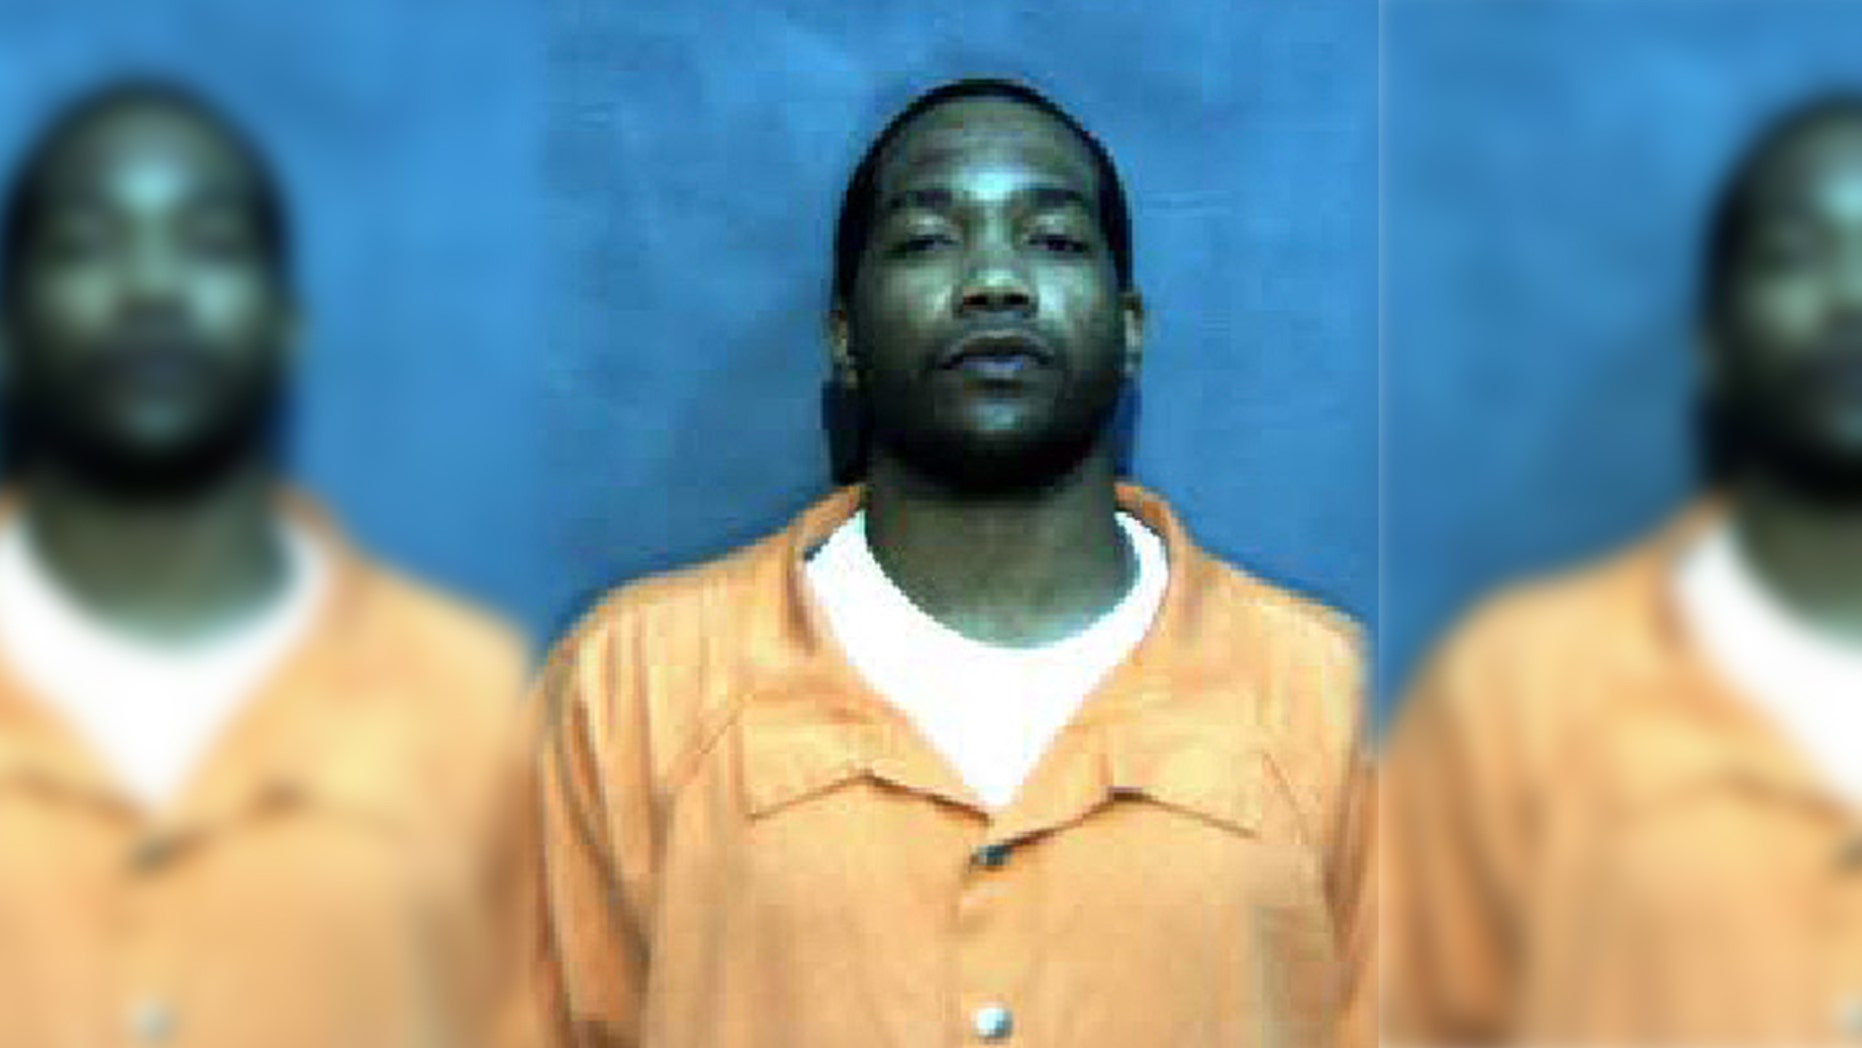 Kharon Davis who has been jailed for an alleged murder for the last 10 years without a trial.